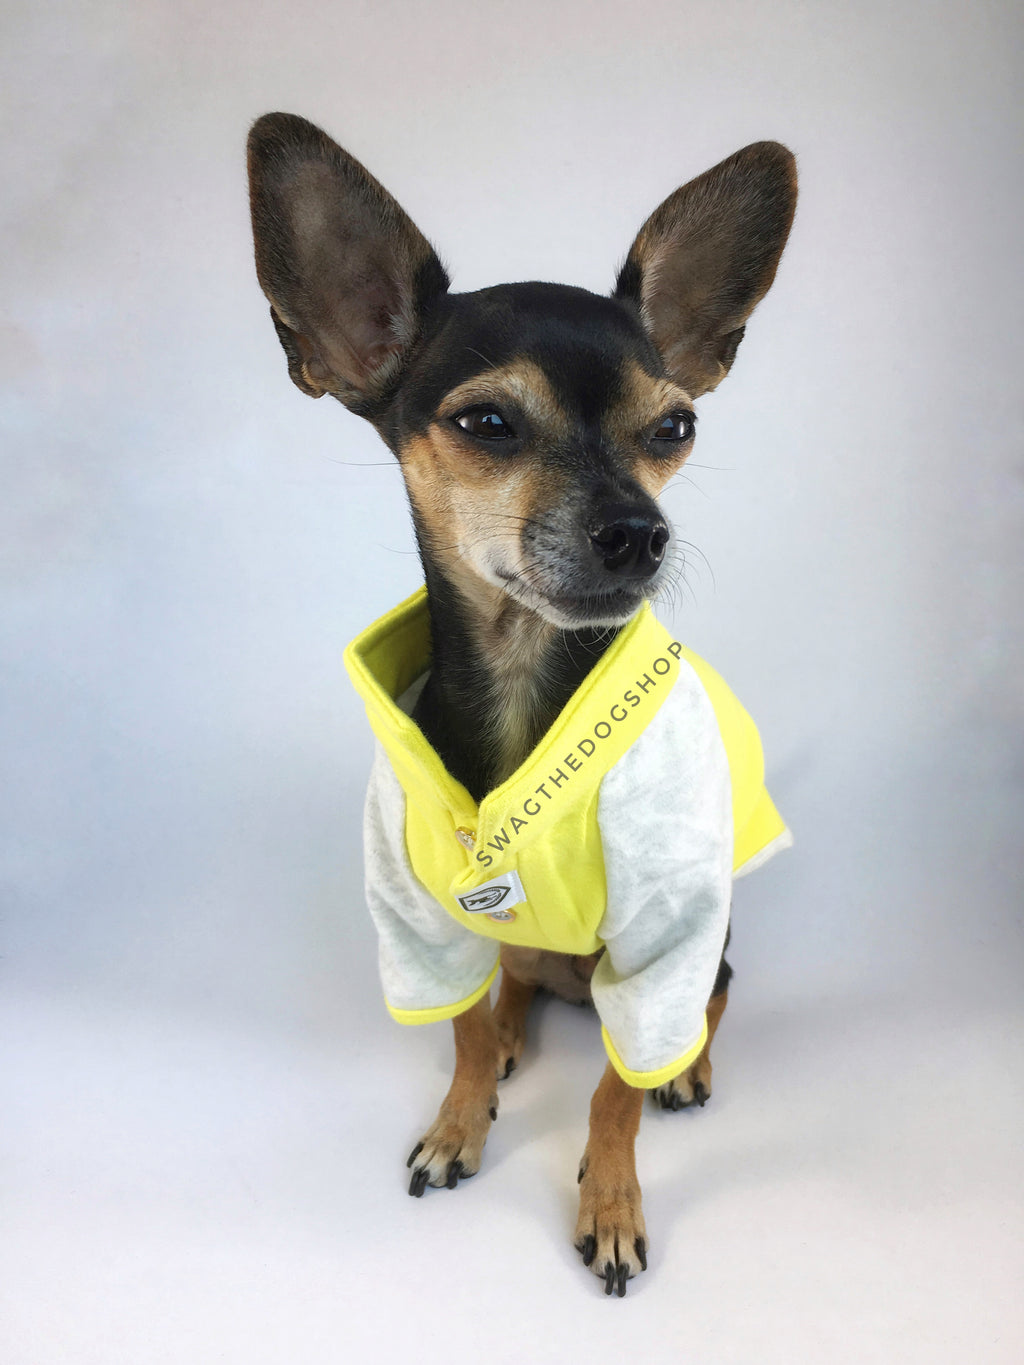 Surfside Lemon Yellow Polo Shirt - Full Front View of Cute Chihuahua Dog Wearing Shirt. Lemon Yellow with Light Gray Sleeves Polo Shirt